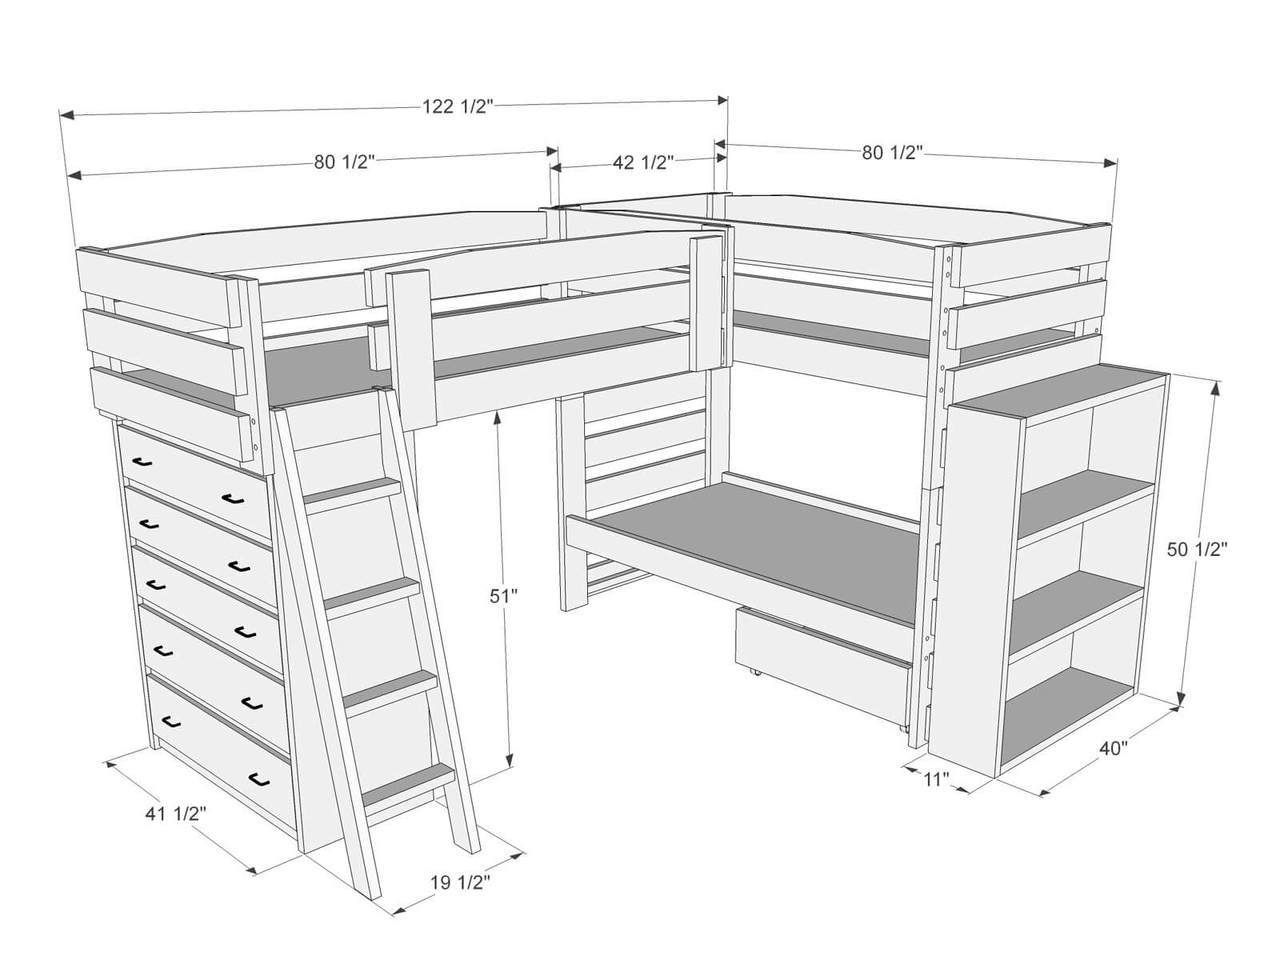 Dimensions Of Triple Bunk Bed L87 Bunk Bed Plans Bunk Beds